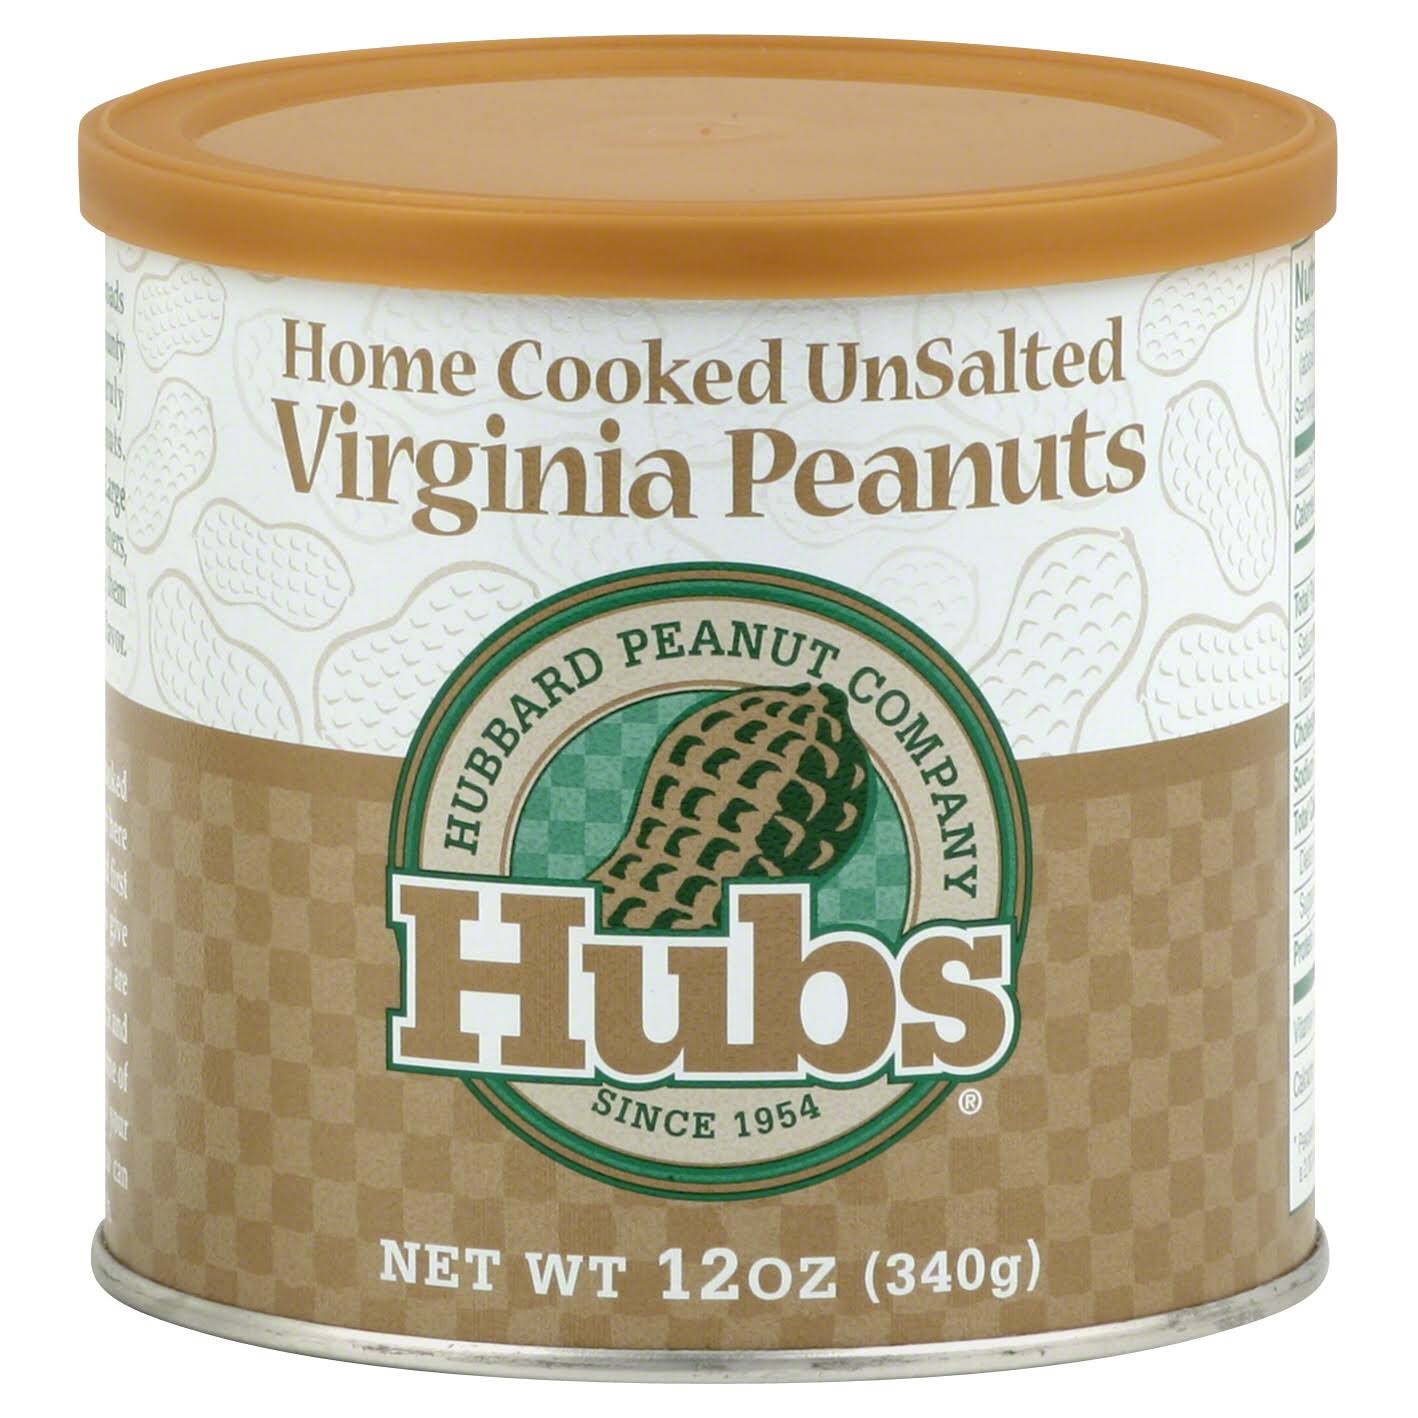 Hubs Home Cooked Virginia Peanuts - Unsalted, 12oz